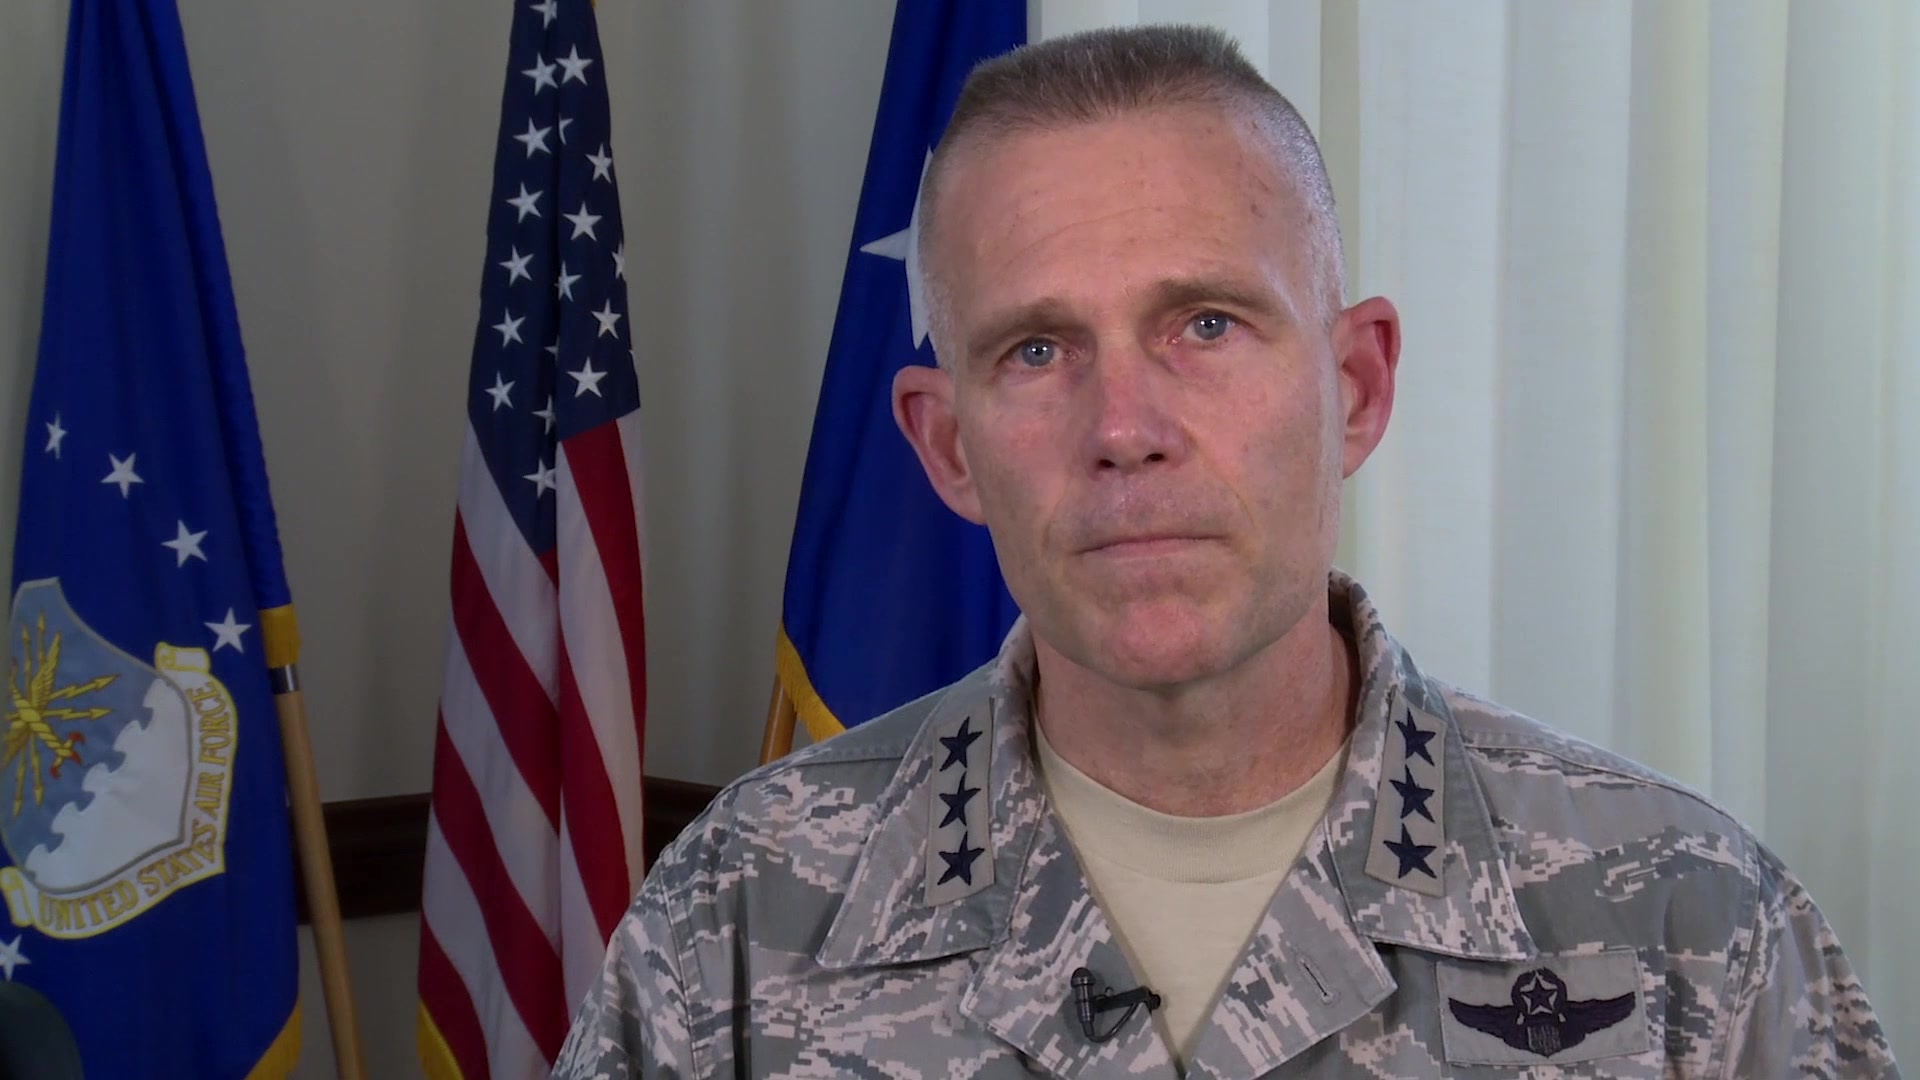 Three commanders at Laughlin AFB's 47th Flying Training Wing were relieved Oct. 31 following investigations which revealed chronic leadership failures.